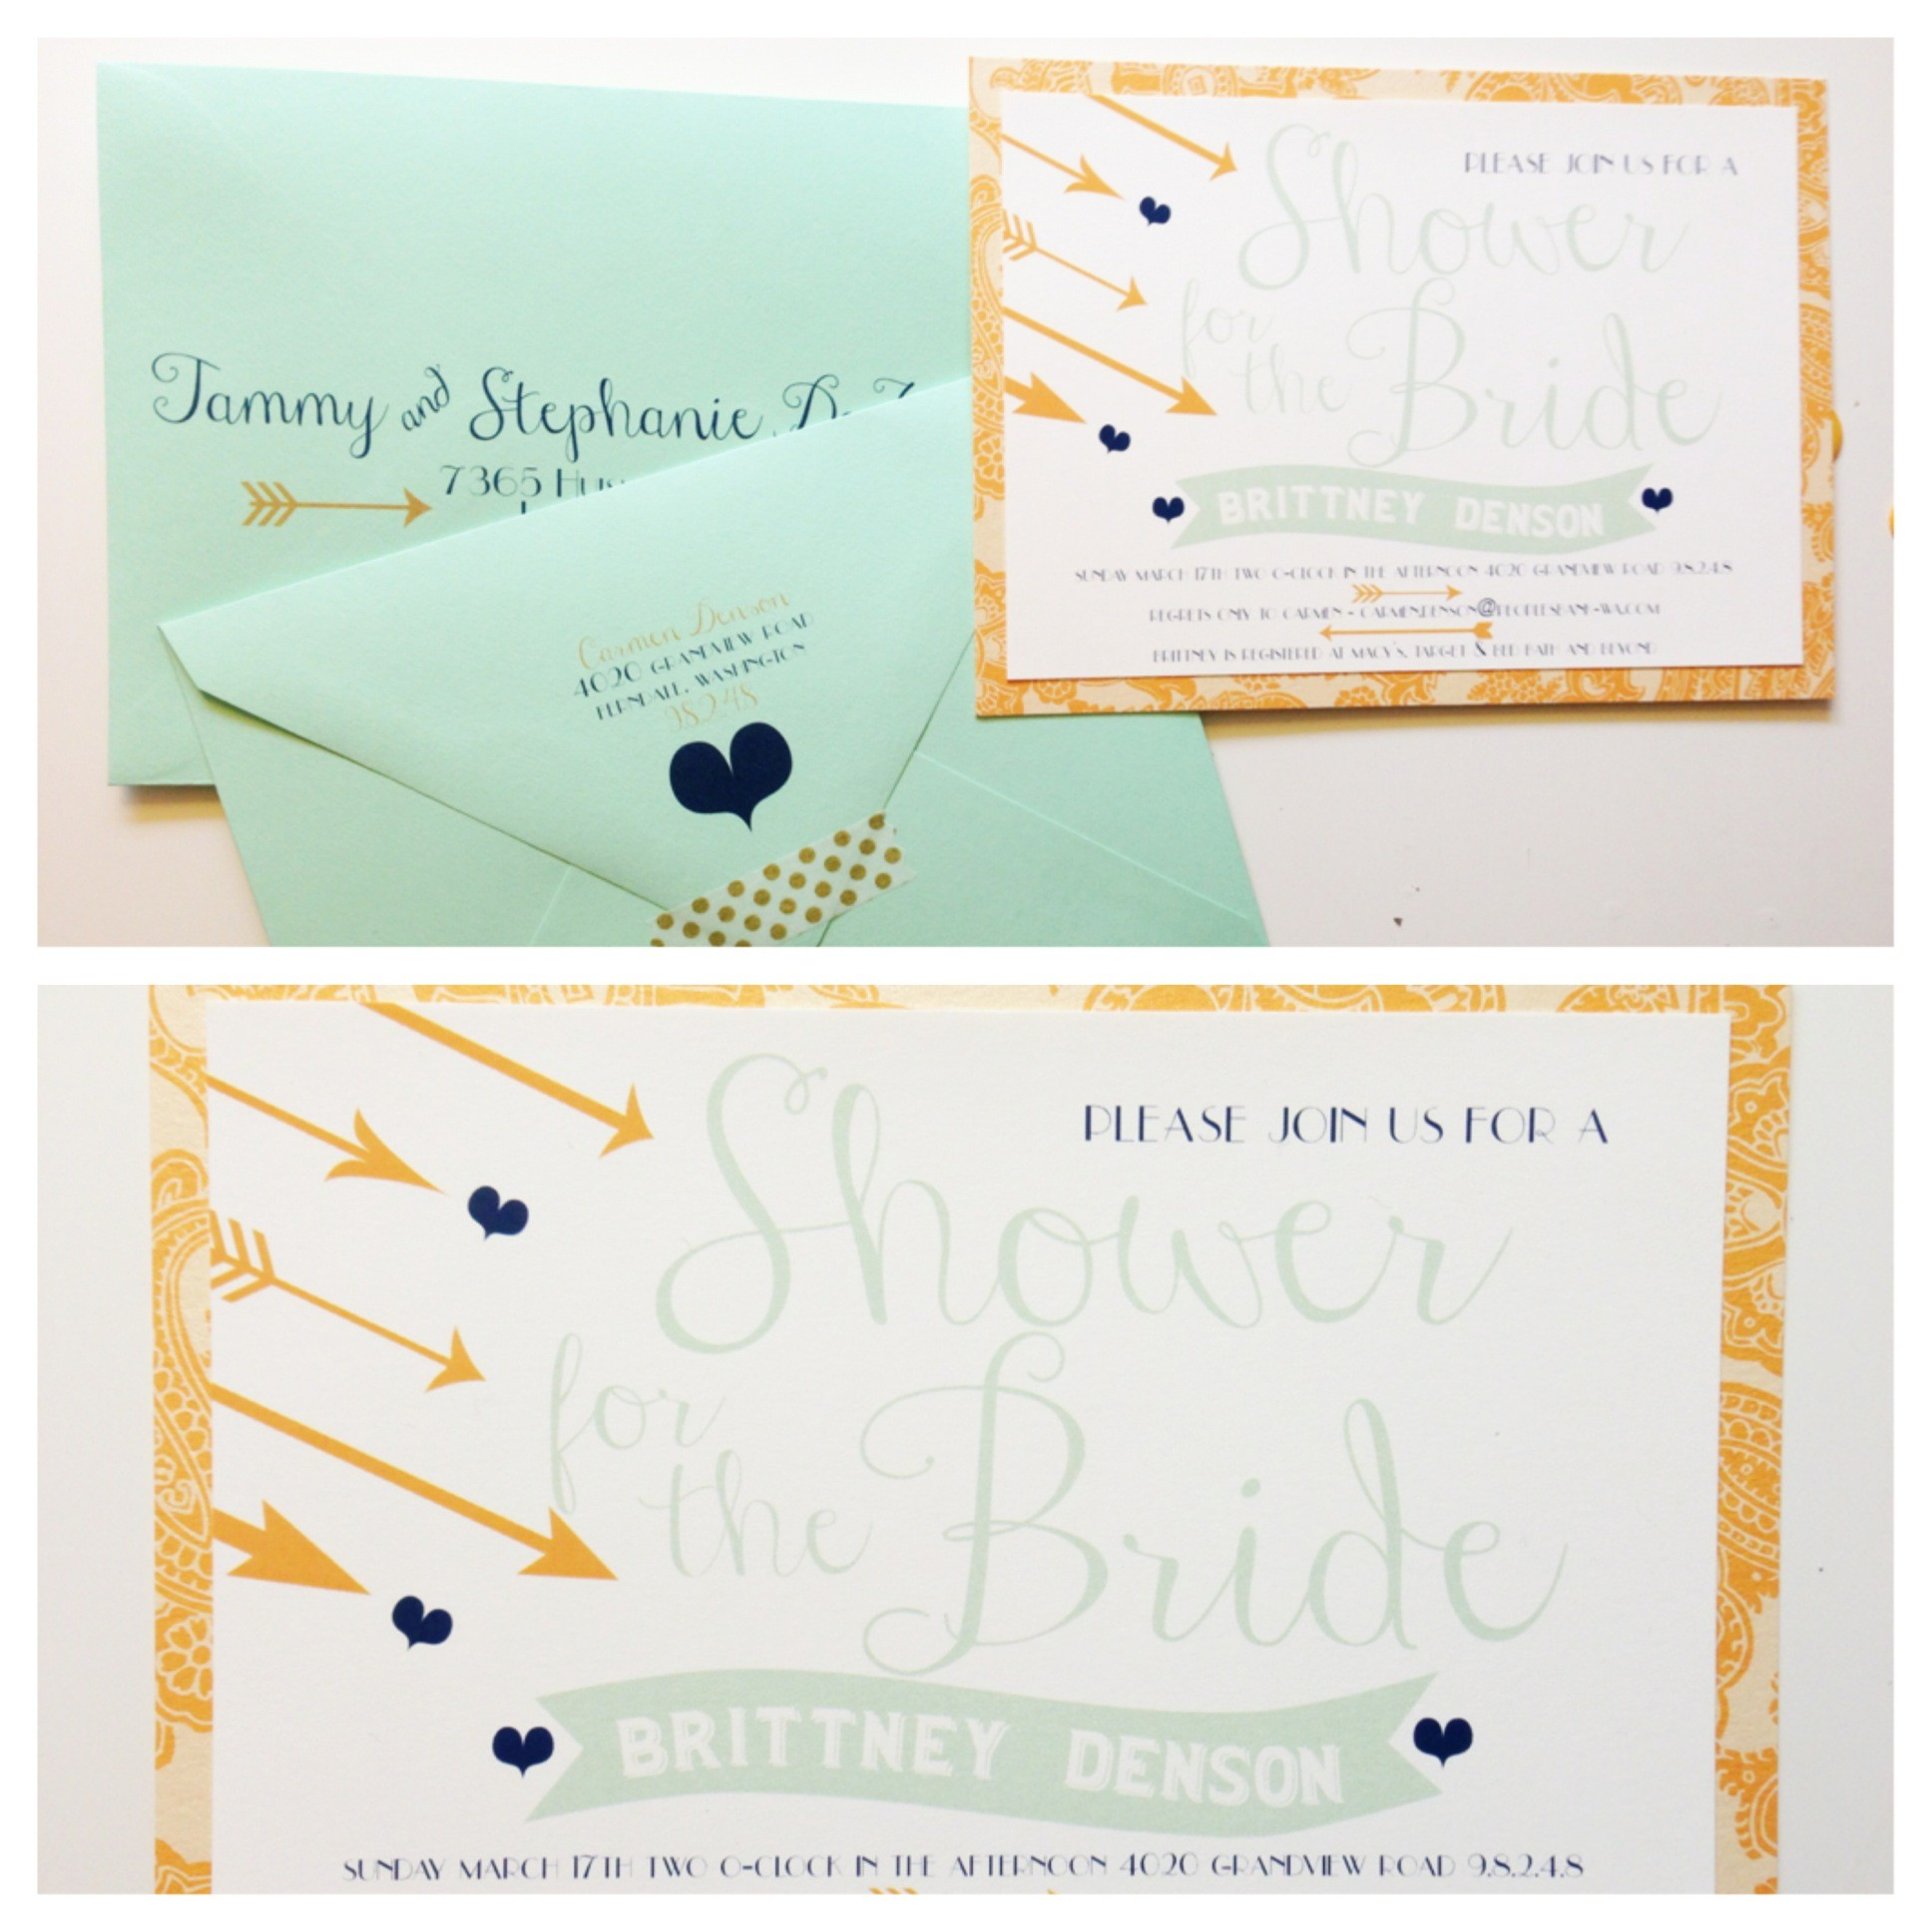 heart and arrow invitations, bridal shower invitations, seattle wedding invitations